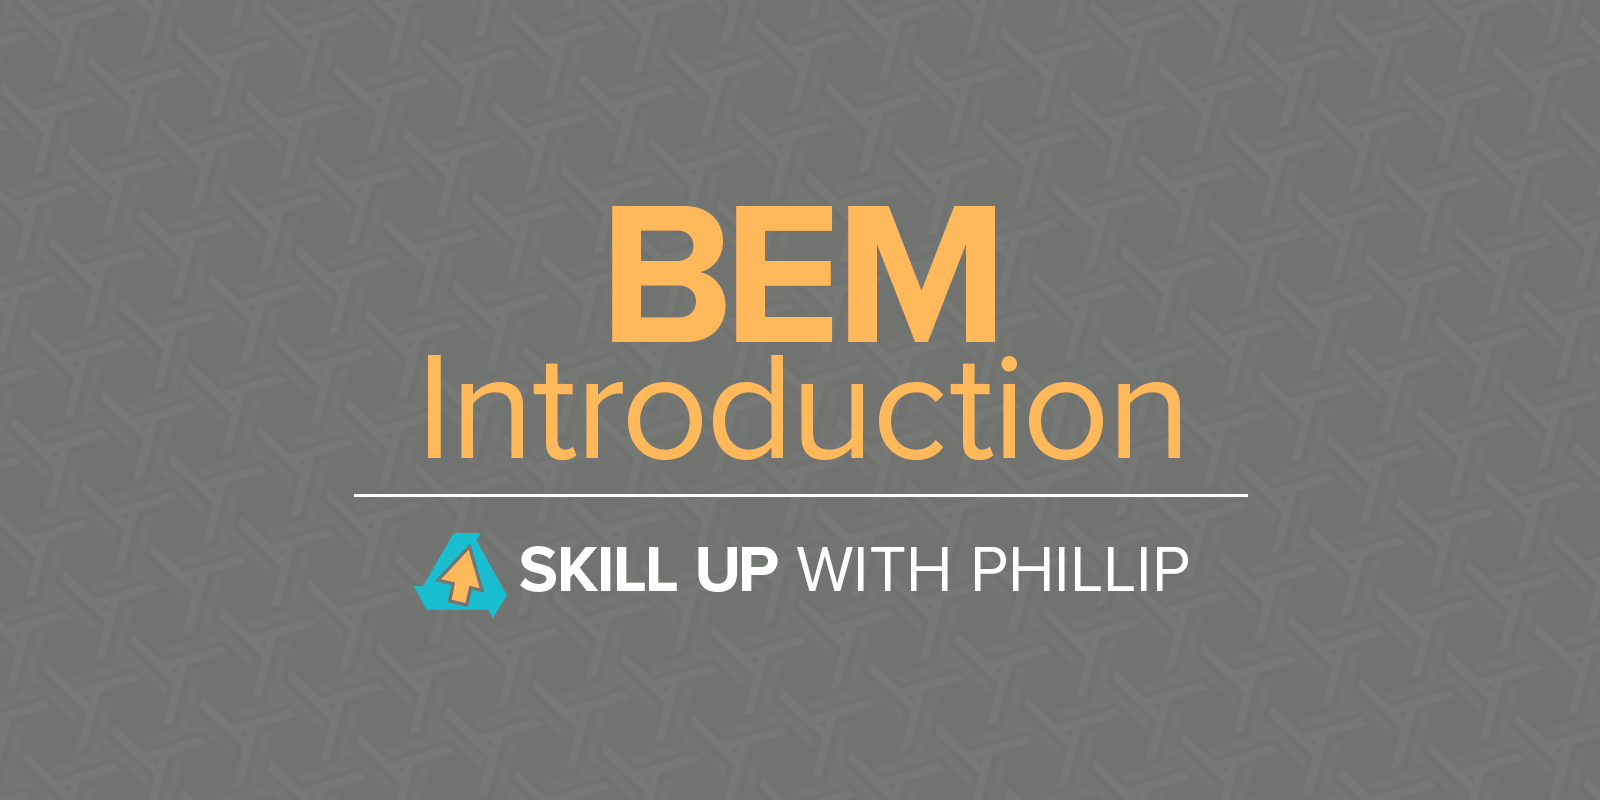 skill-up-phillip-bem-introduction